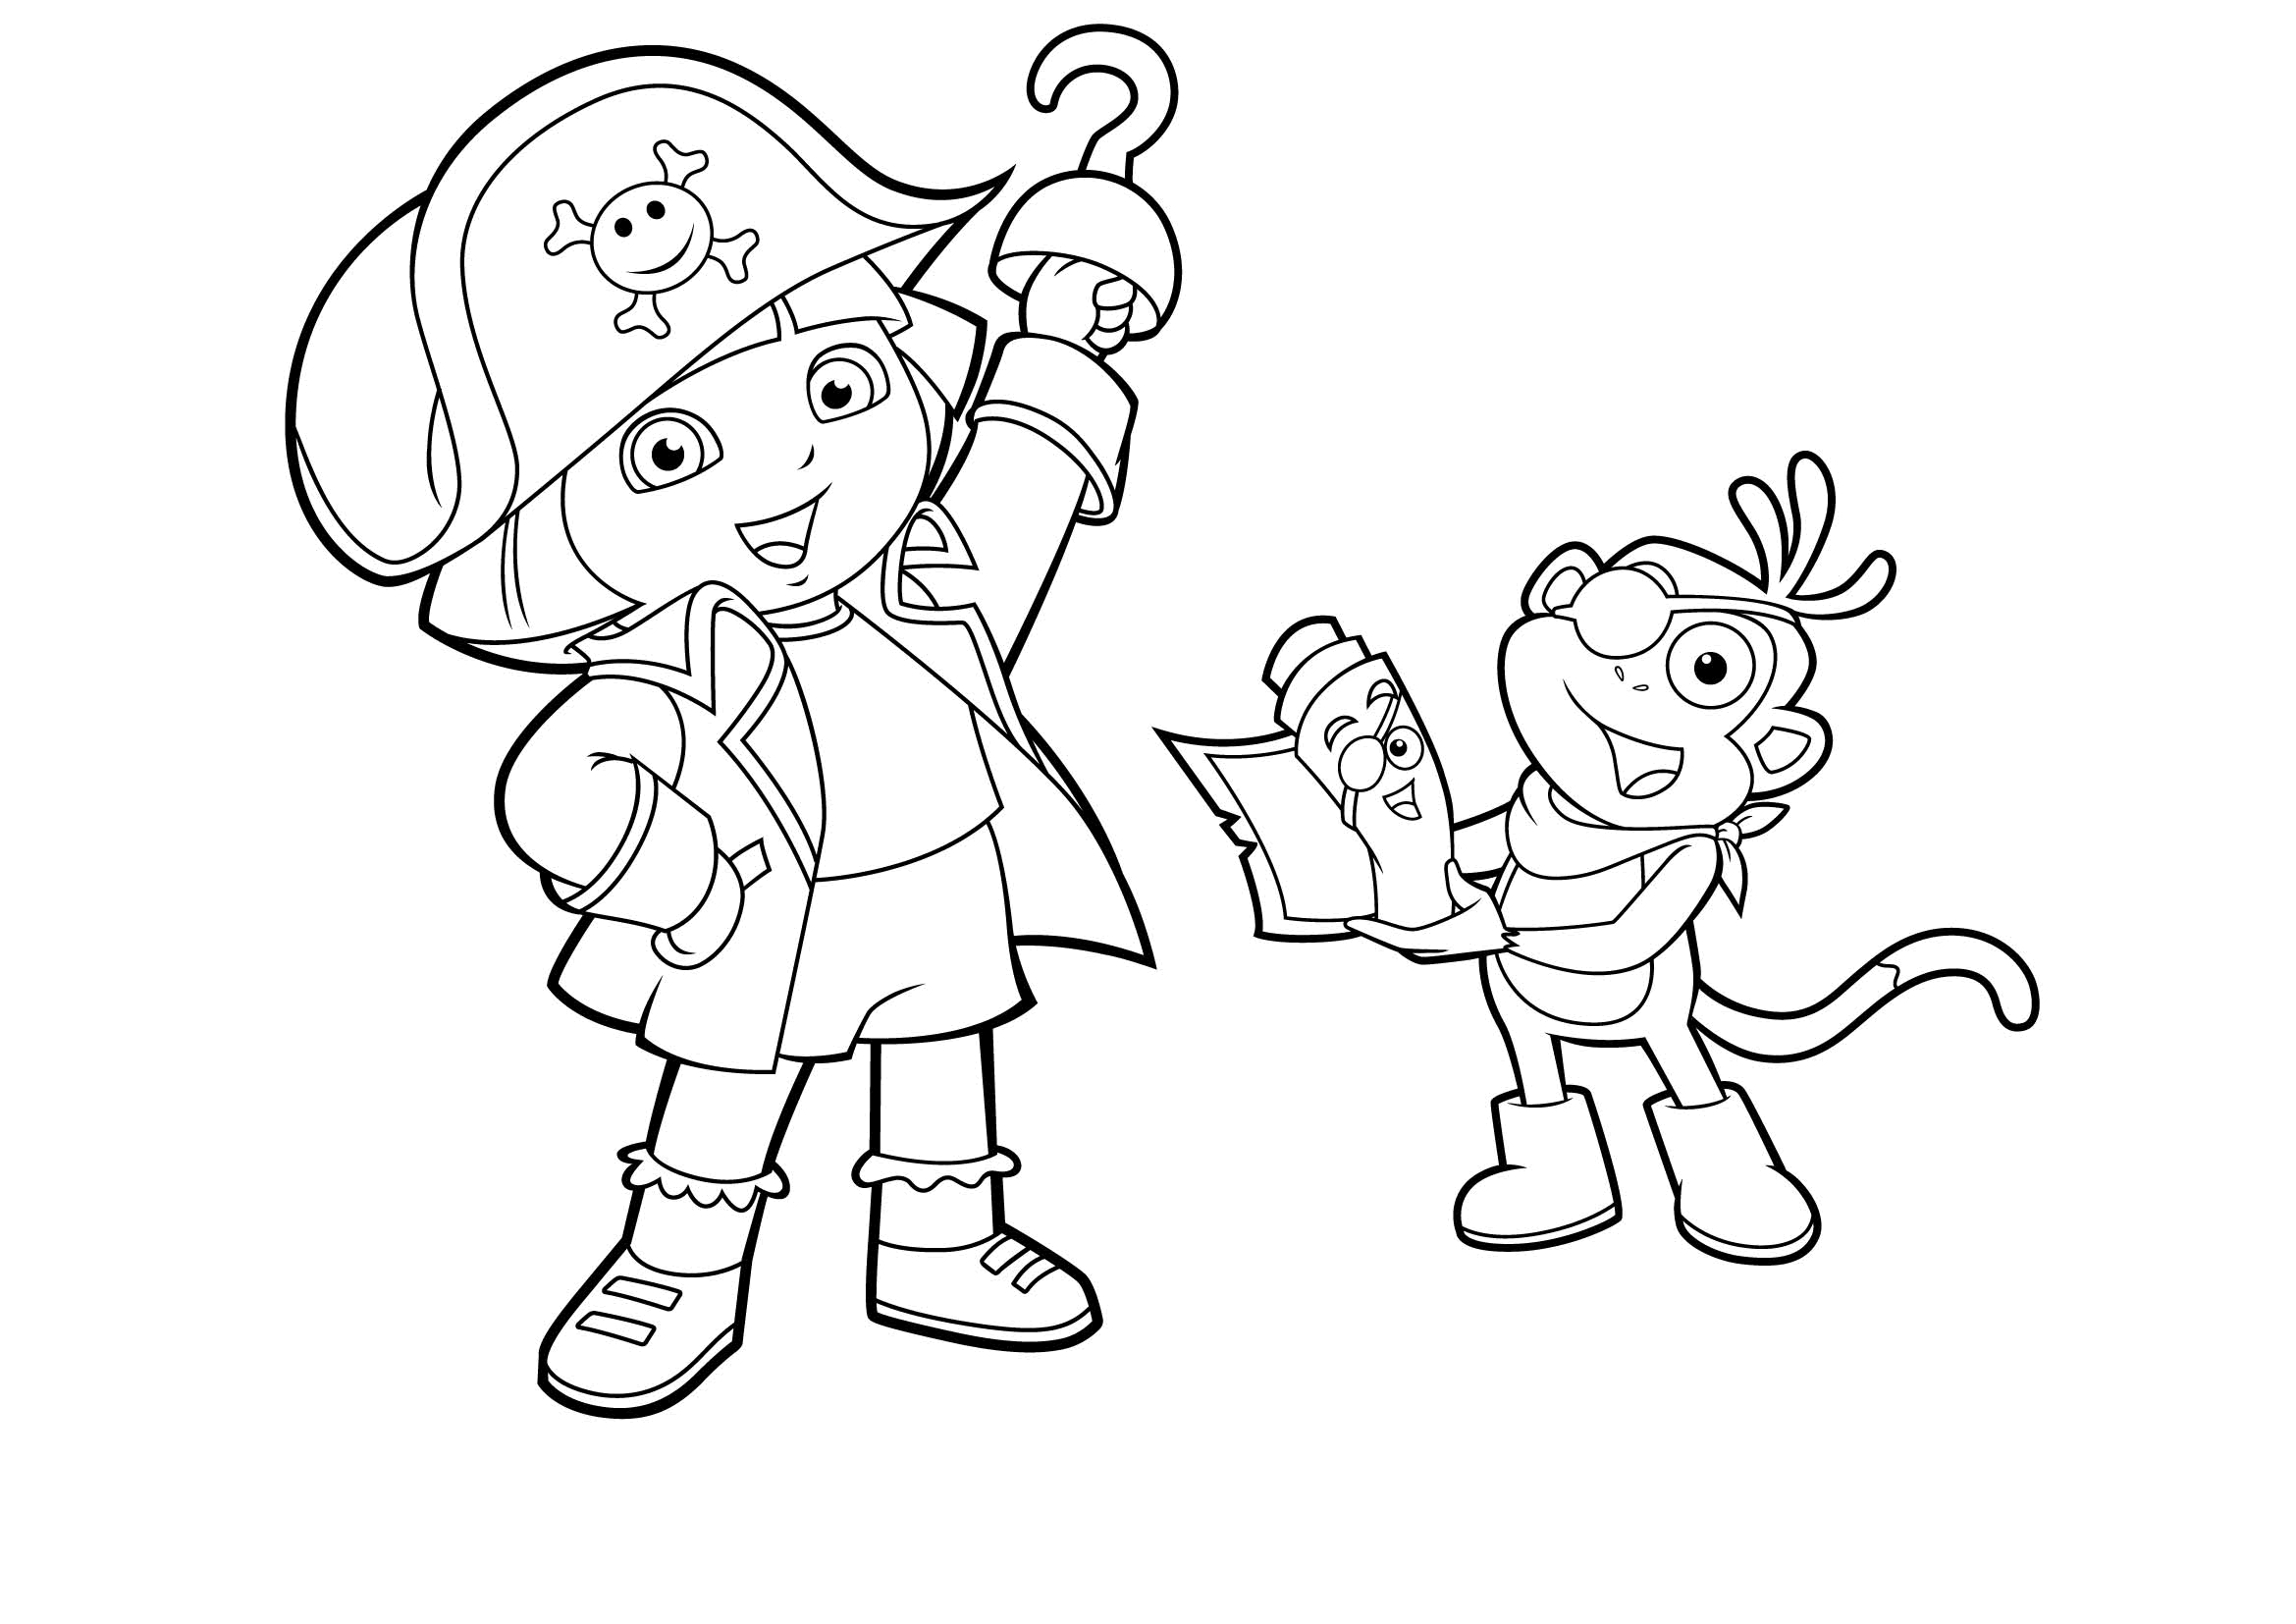 diego coloring pages - dora aventureira pirata